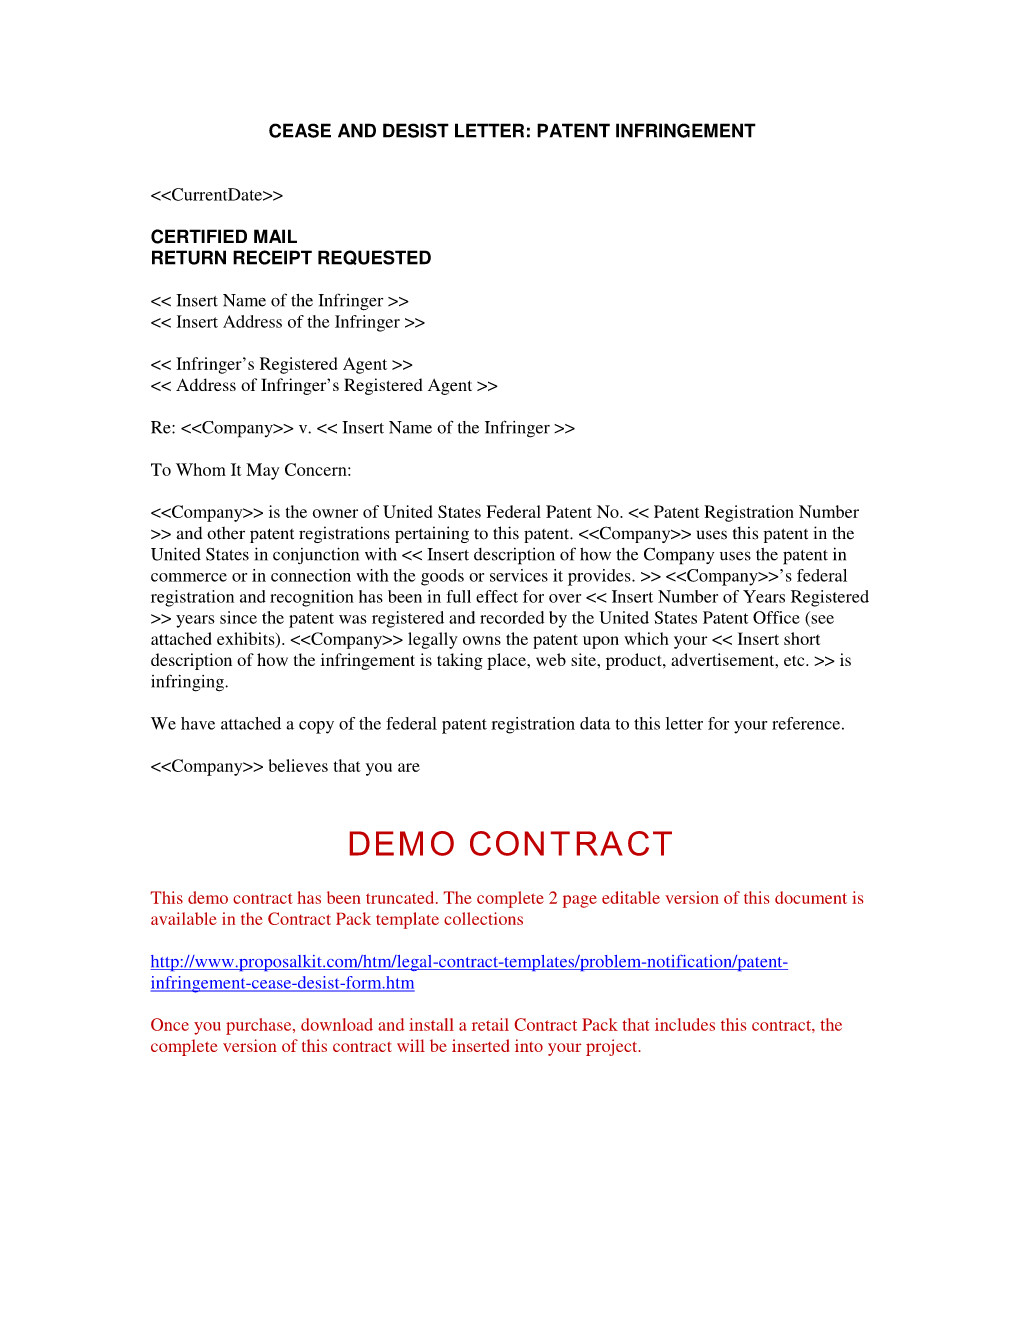 """Trademark Cease and Desist Letter Template - Trademark Cease and Desist Letter Fresh Cease and Desist"""" Letter"""